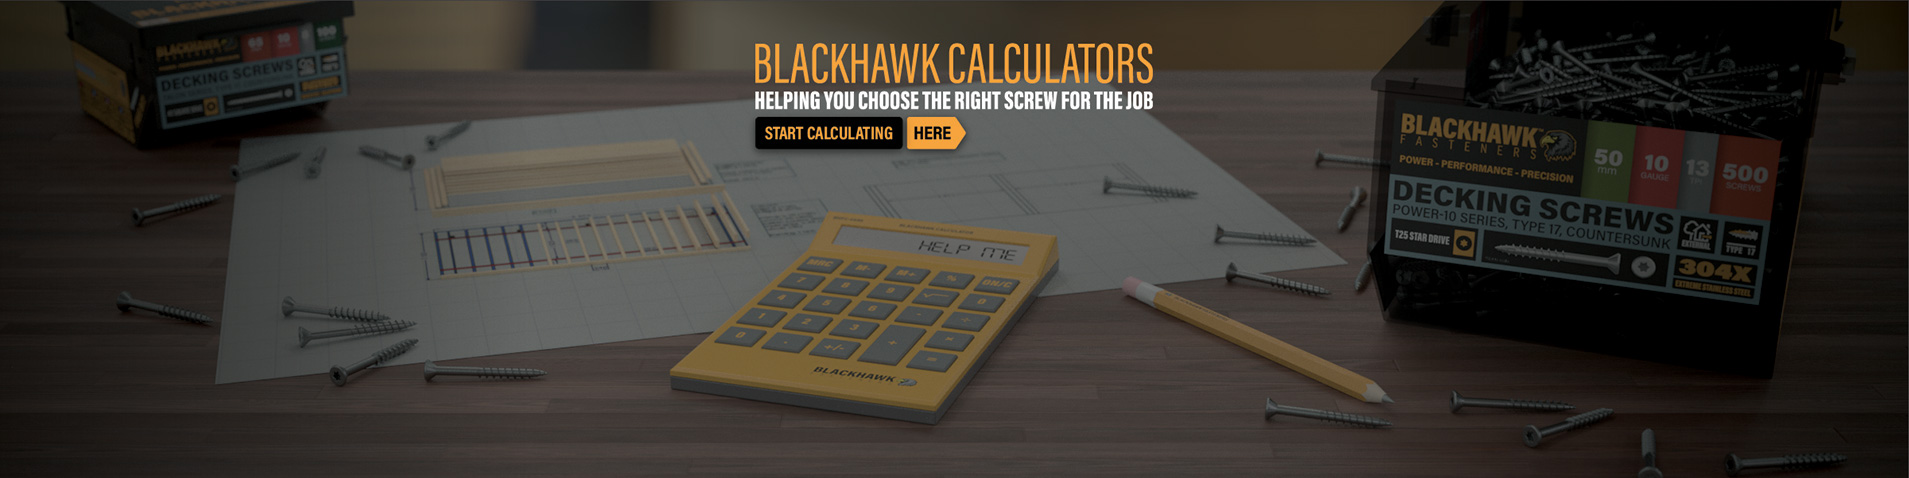 Blackhawk Calculator